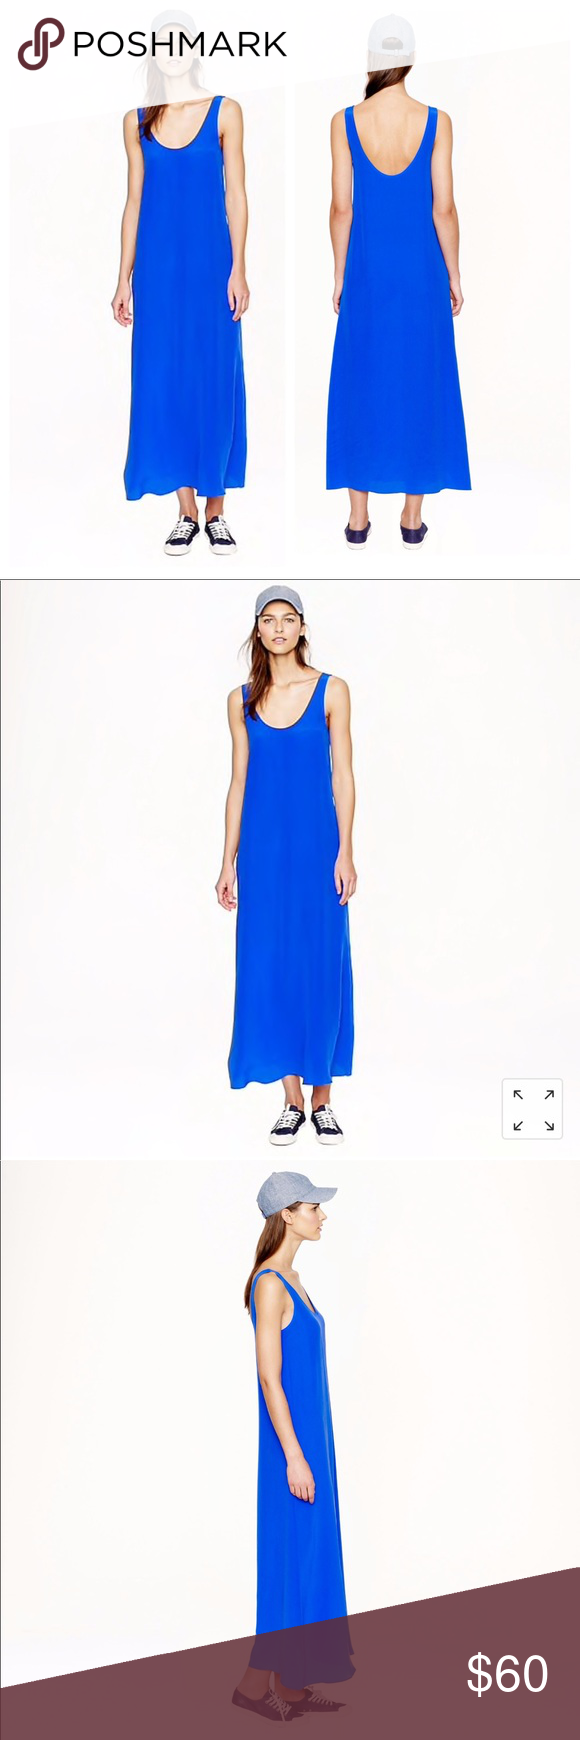 351a7c42205 J Crew blue silk crepe maxi dress size XS Currently sold out on J Crew  website